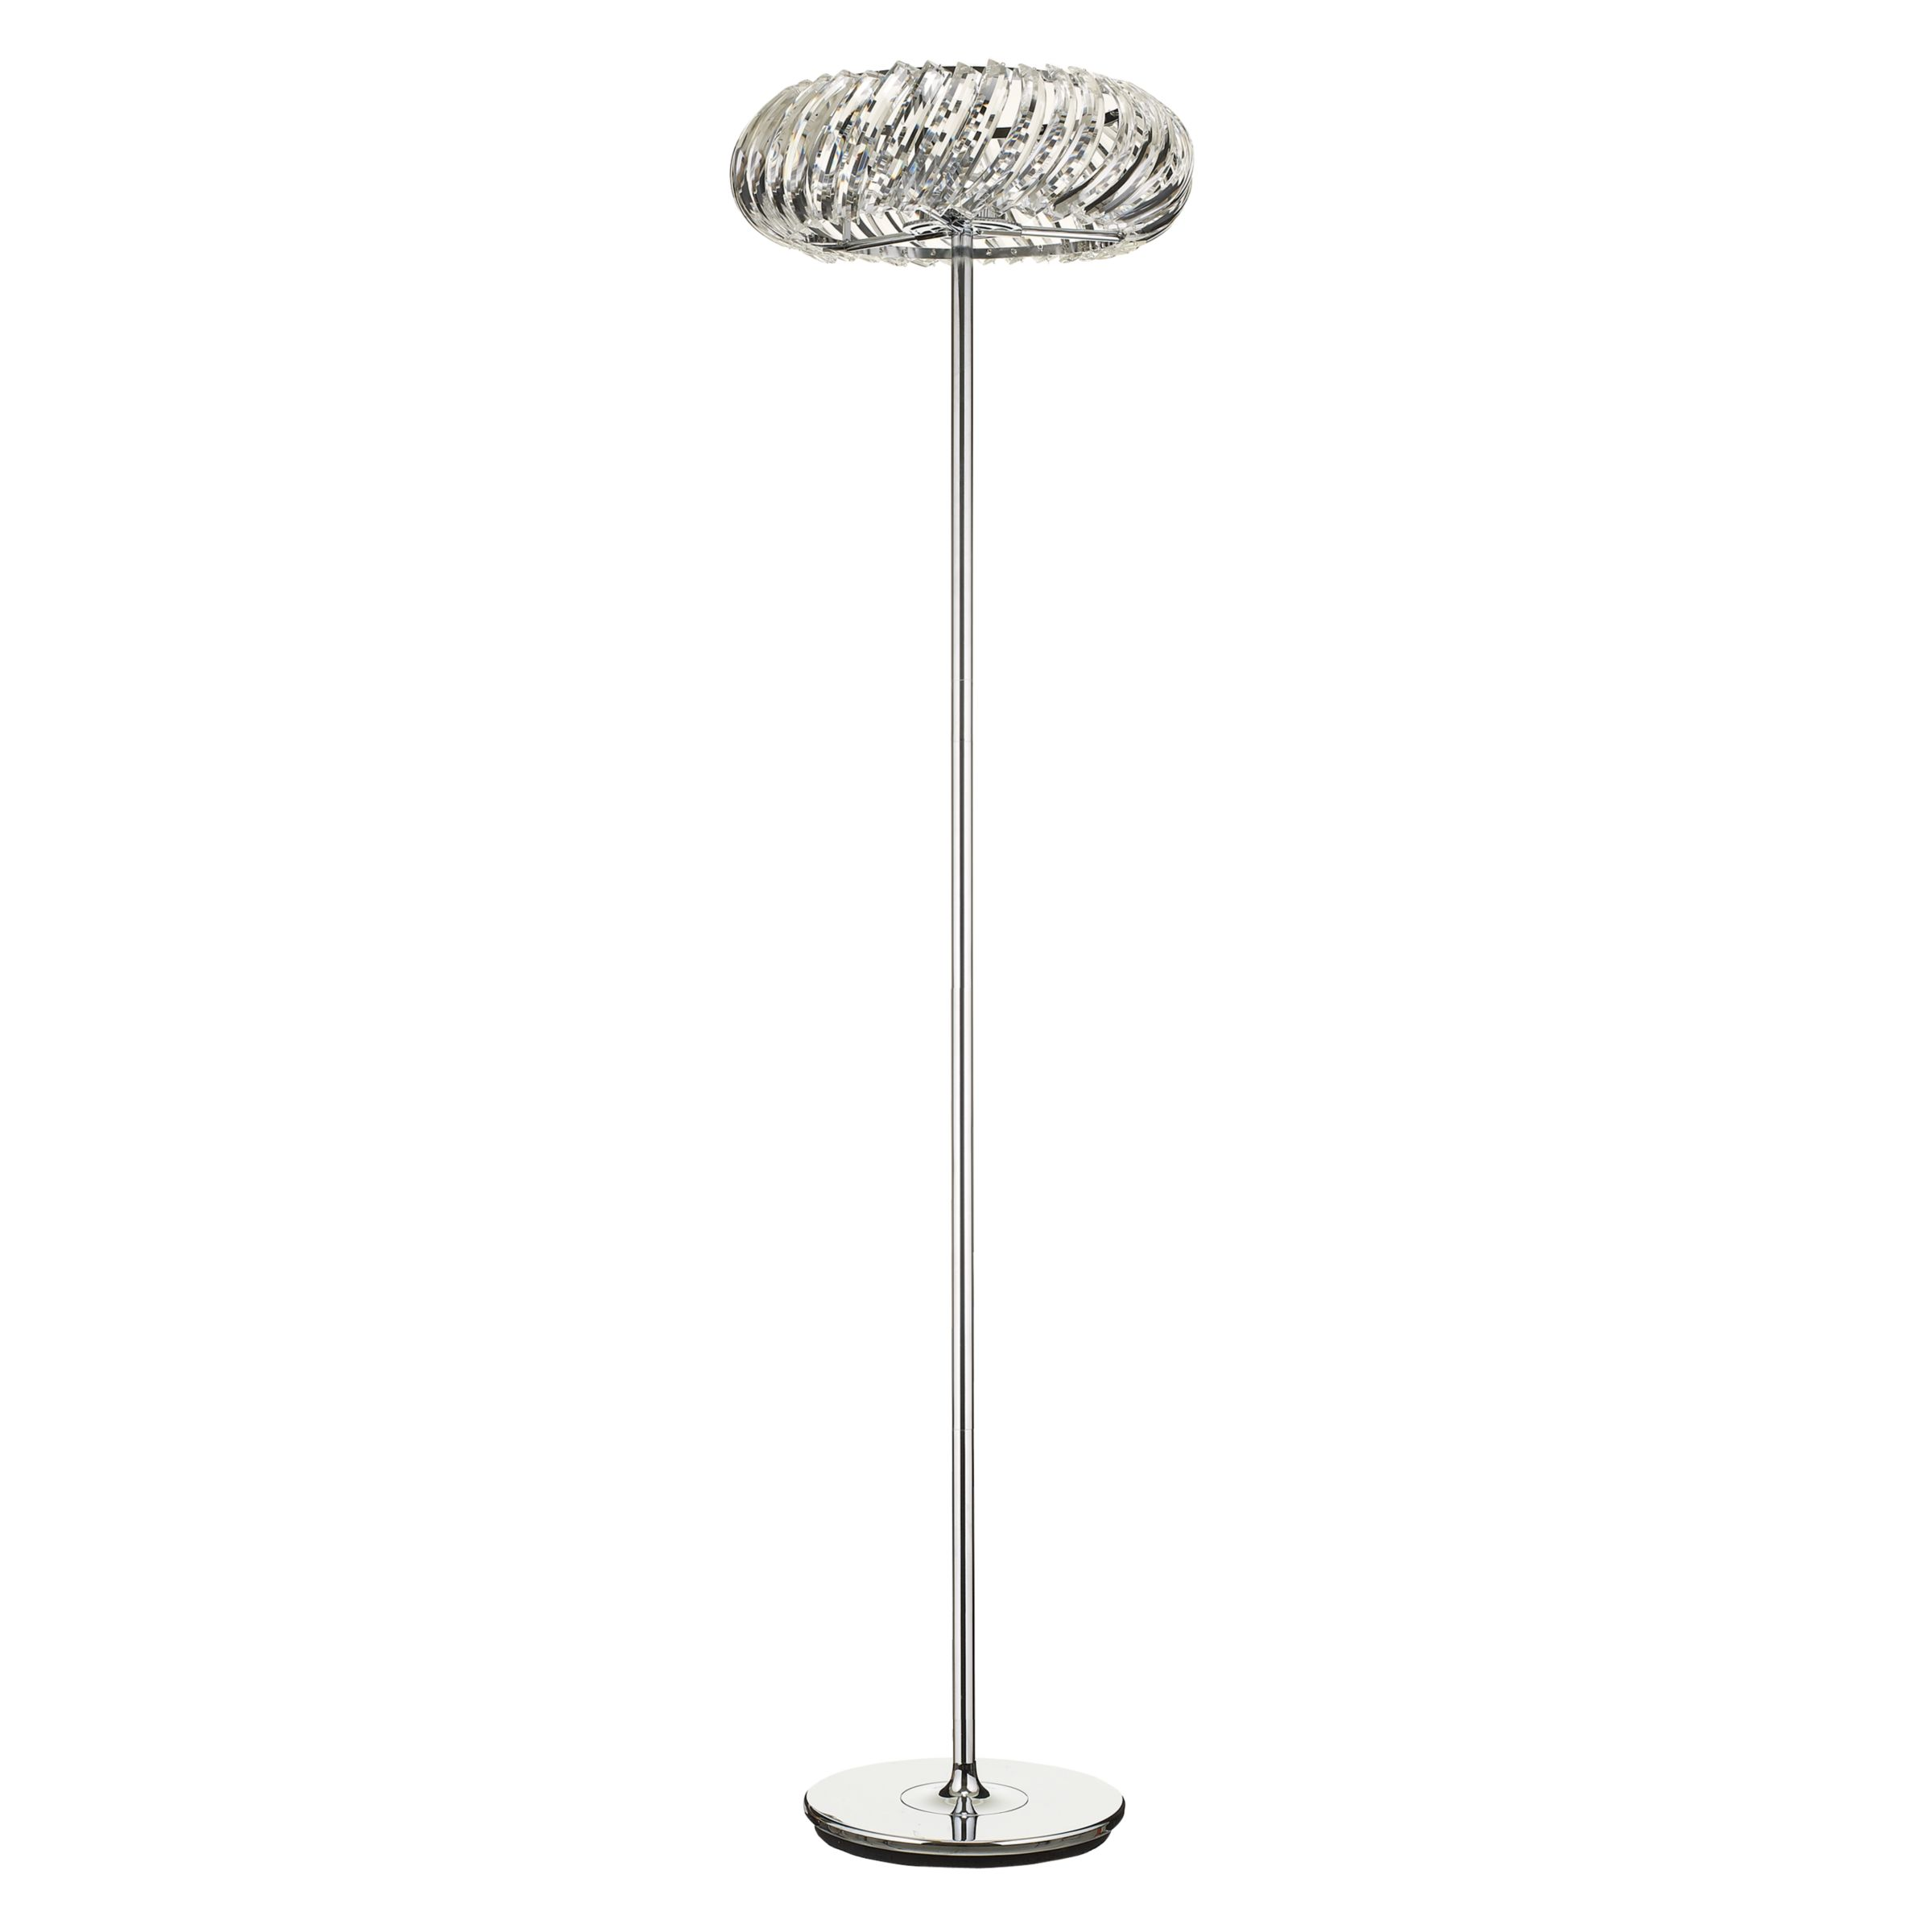 John lewis cressida floor lamp review compare prices for Buy floor lamp online